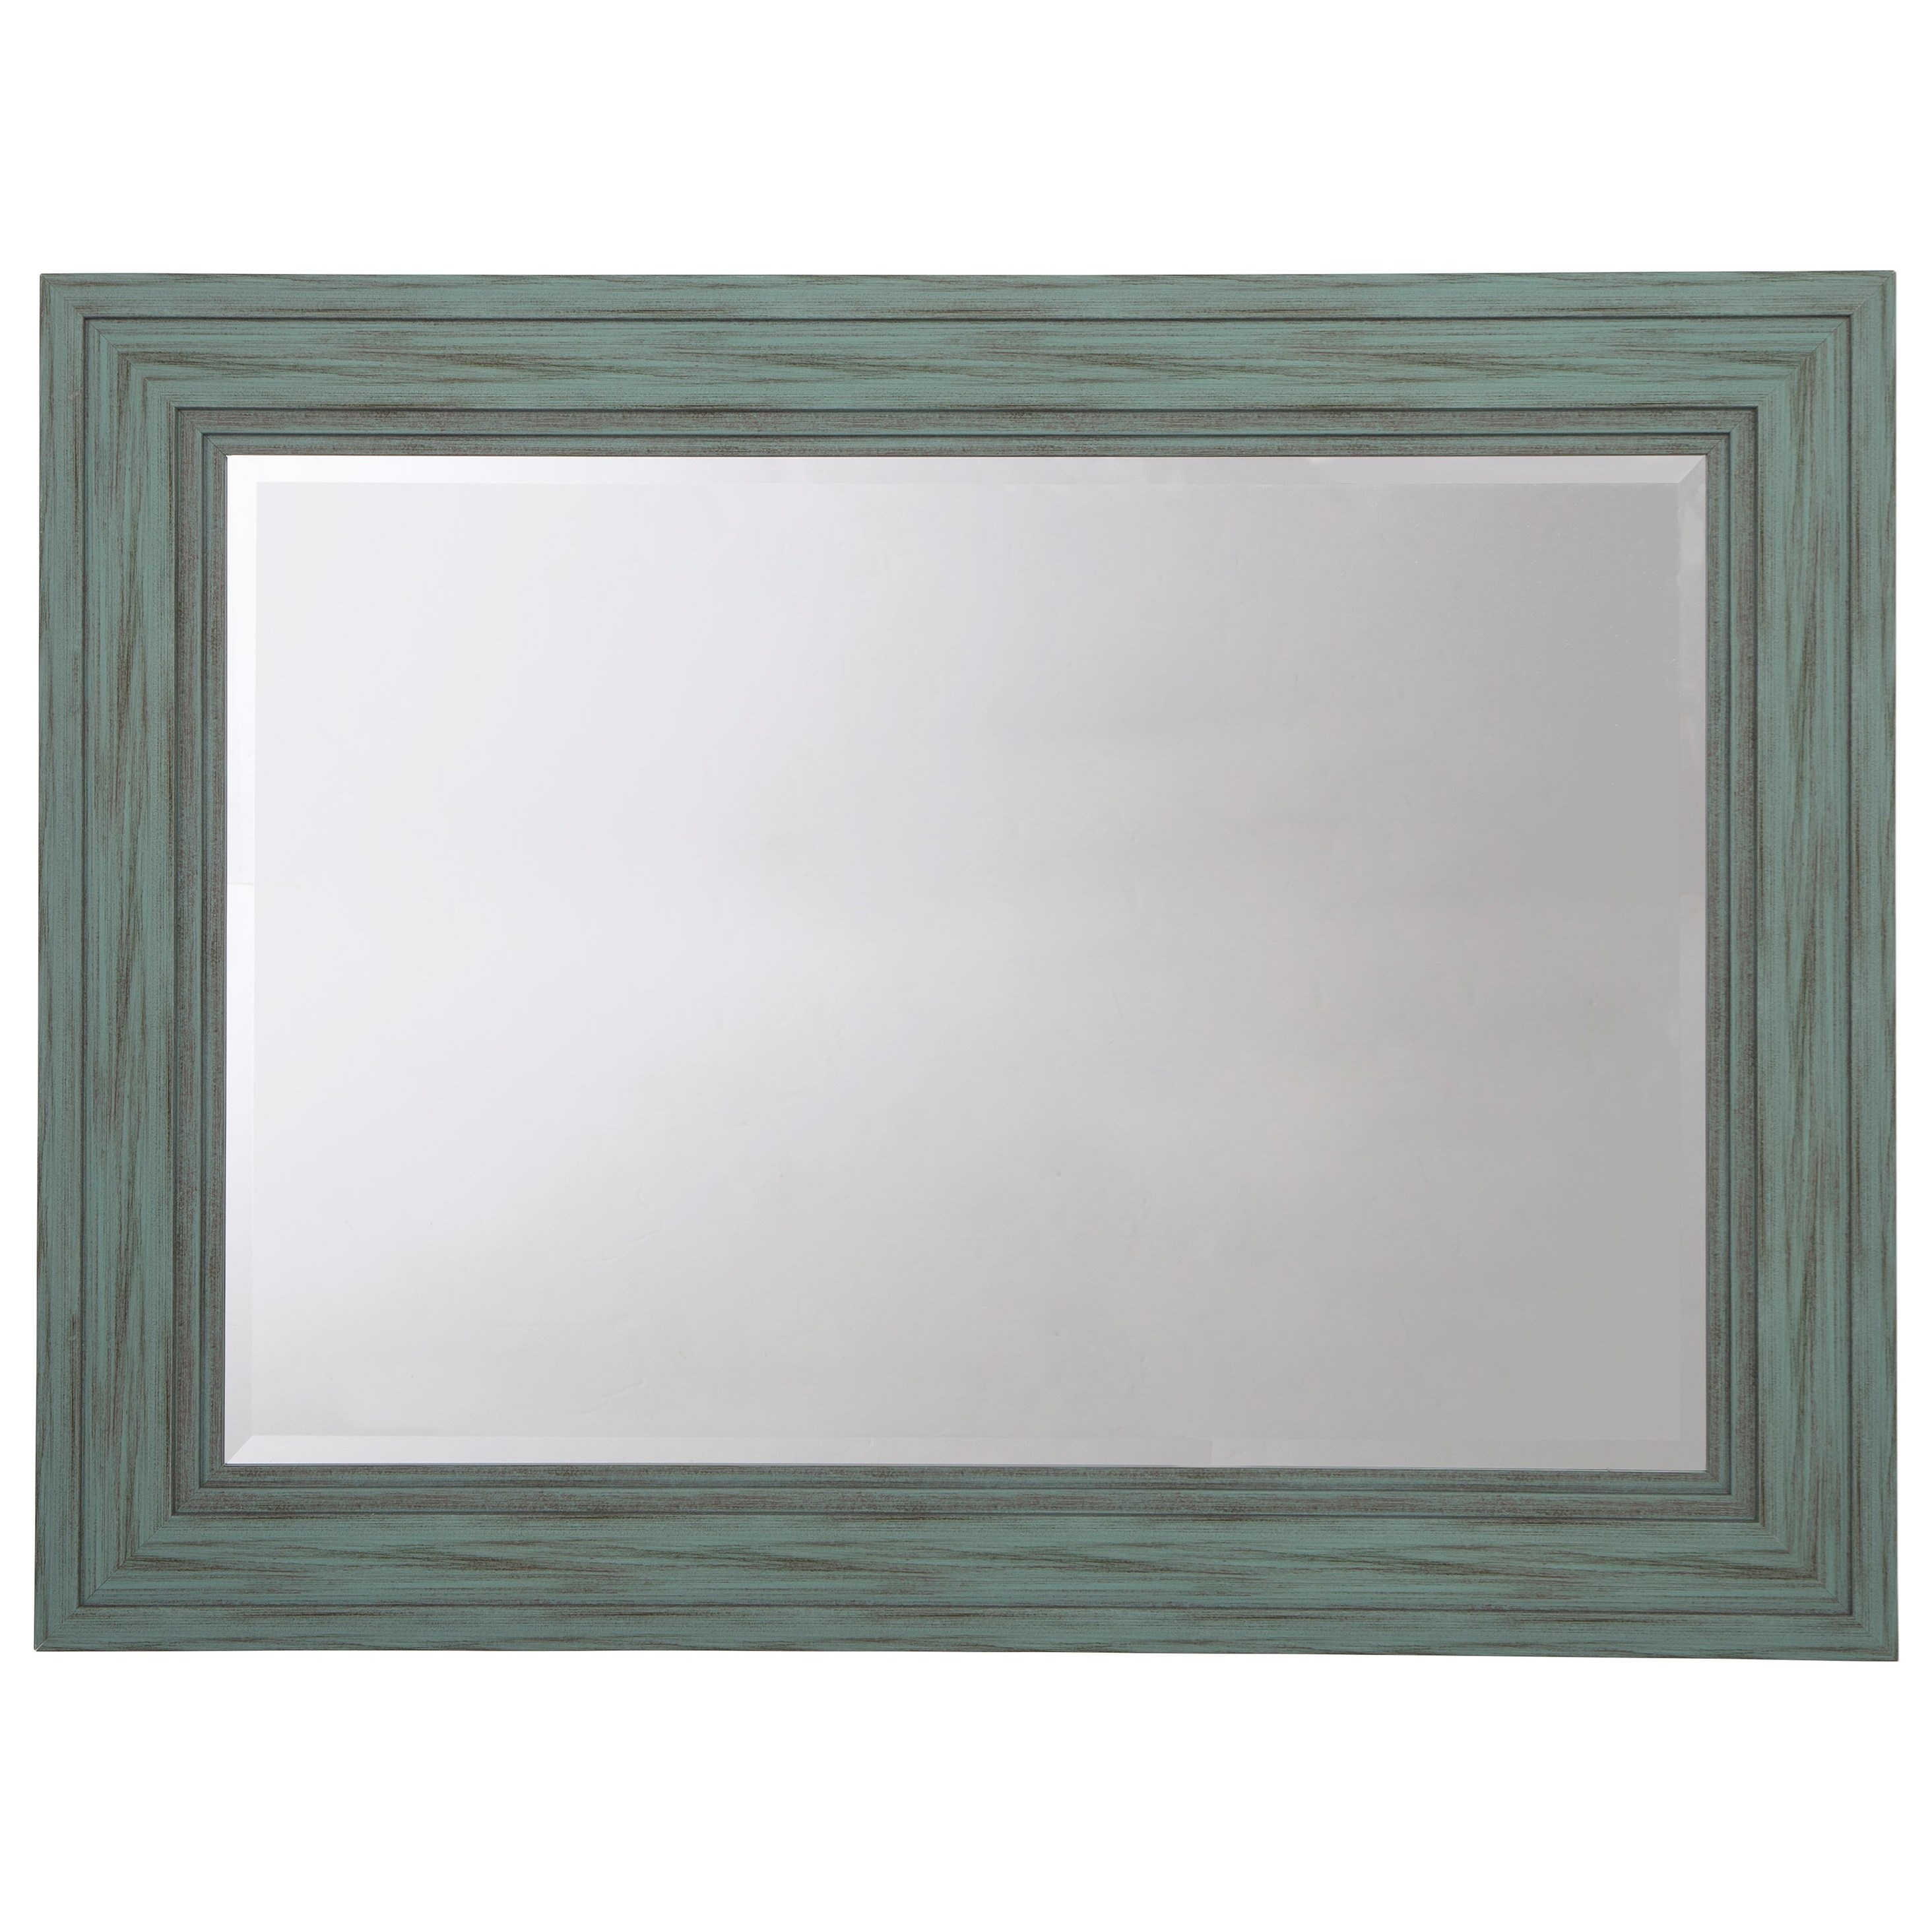 Accent Mirrors Jacee Antique Teal Accent Mirror by Ashley (Signature Design) at Johnny Janosik